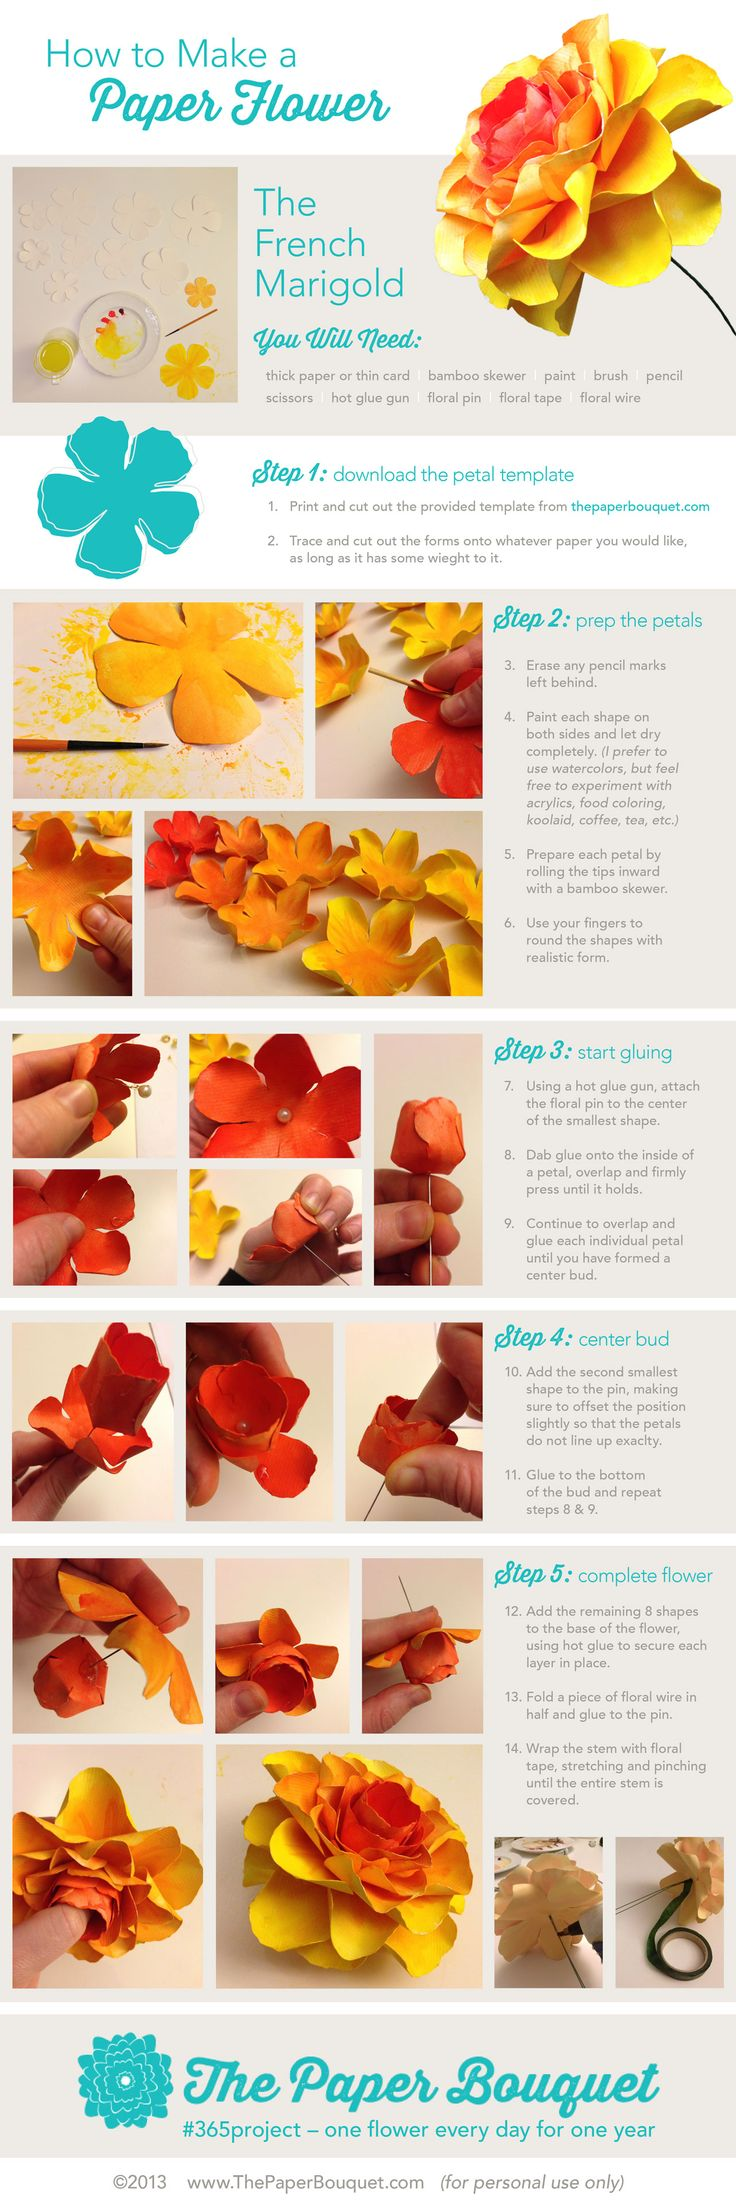 Learn to make paper flowers images fresh lotus flowers how to make marigold flowers out of tissue paper marigold flower mightylinksfo